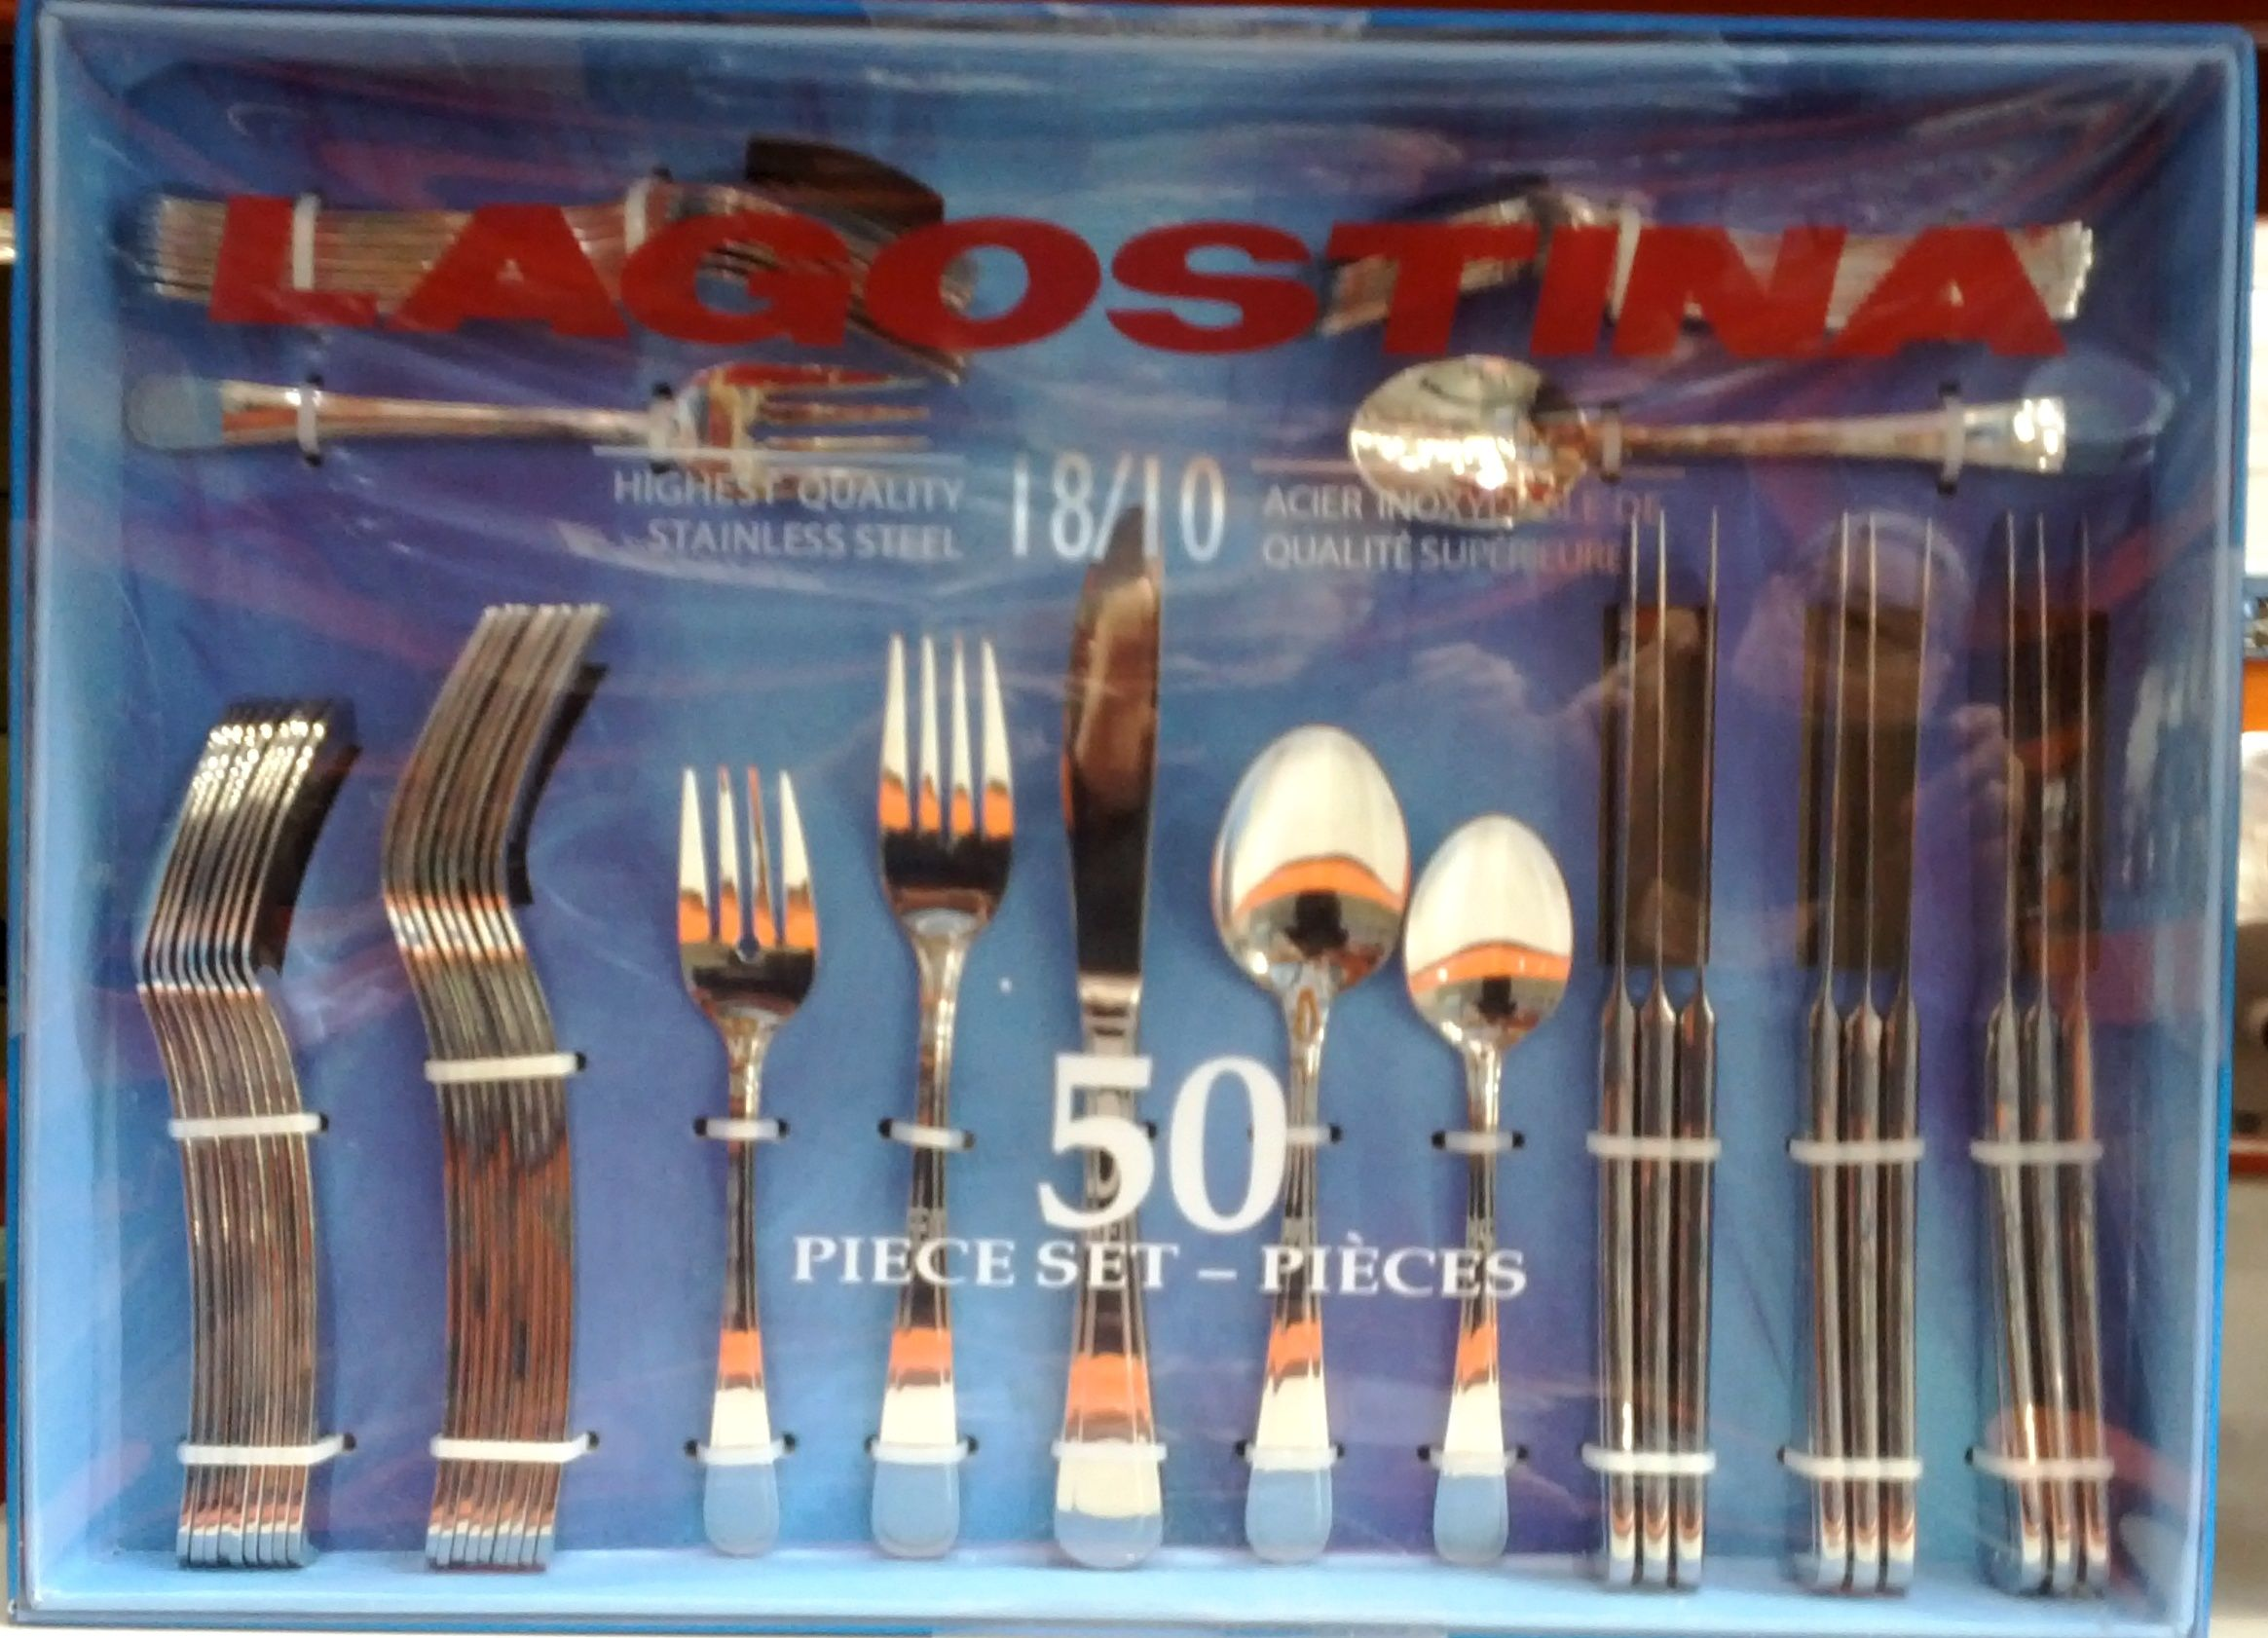 Lagostina Marina Cutlery Set From Costco It S Cheap It S